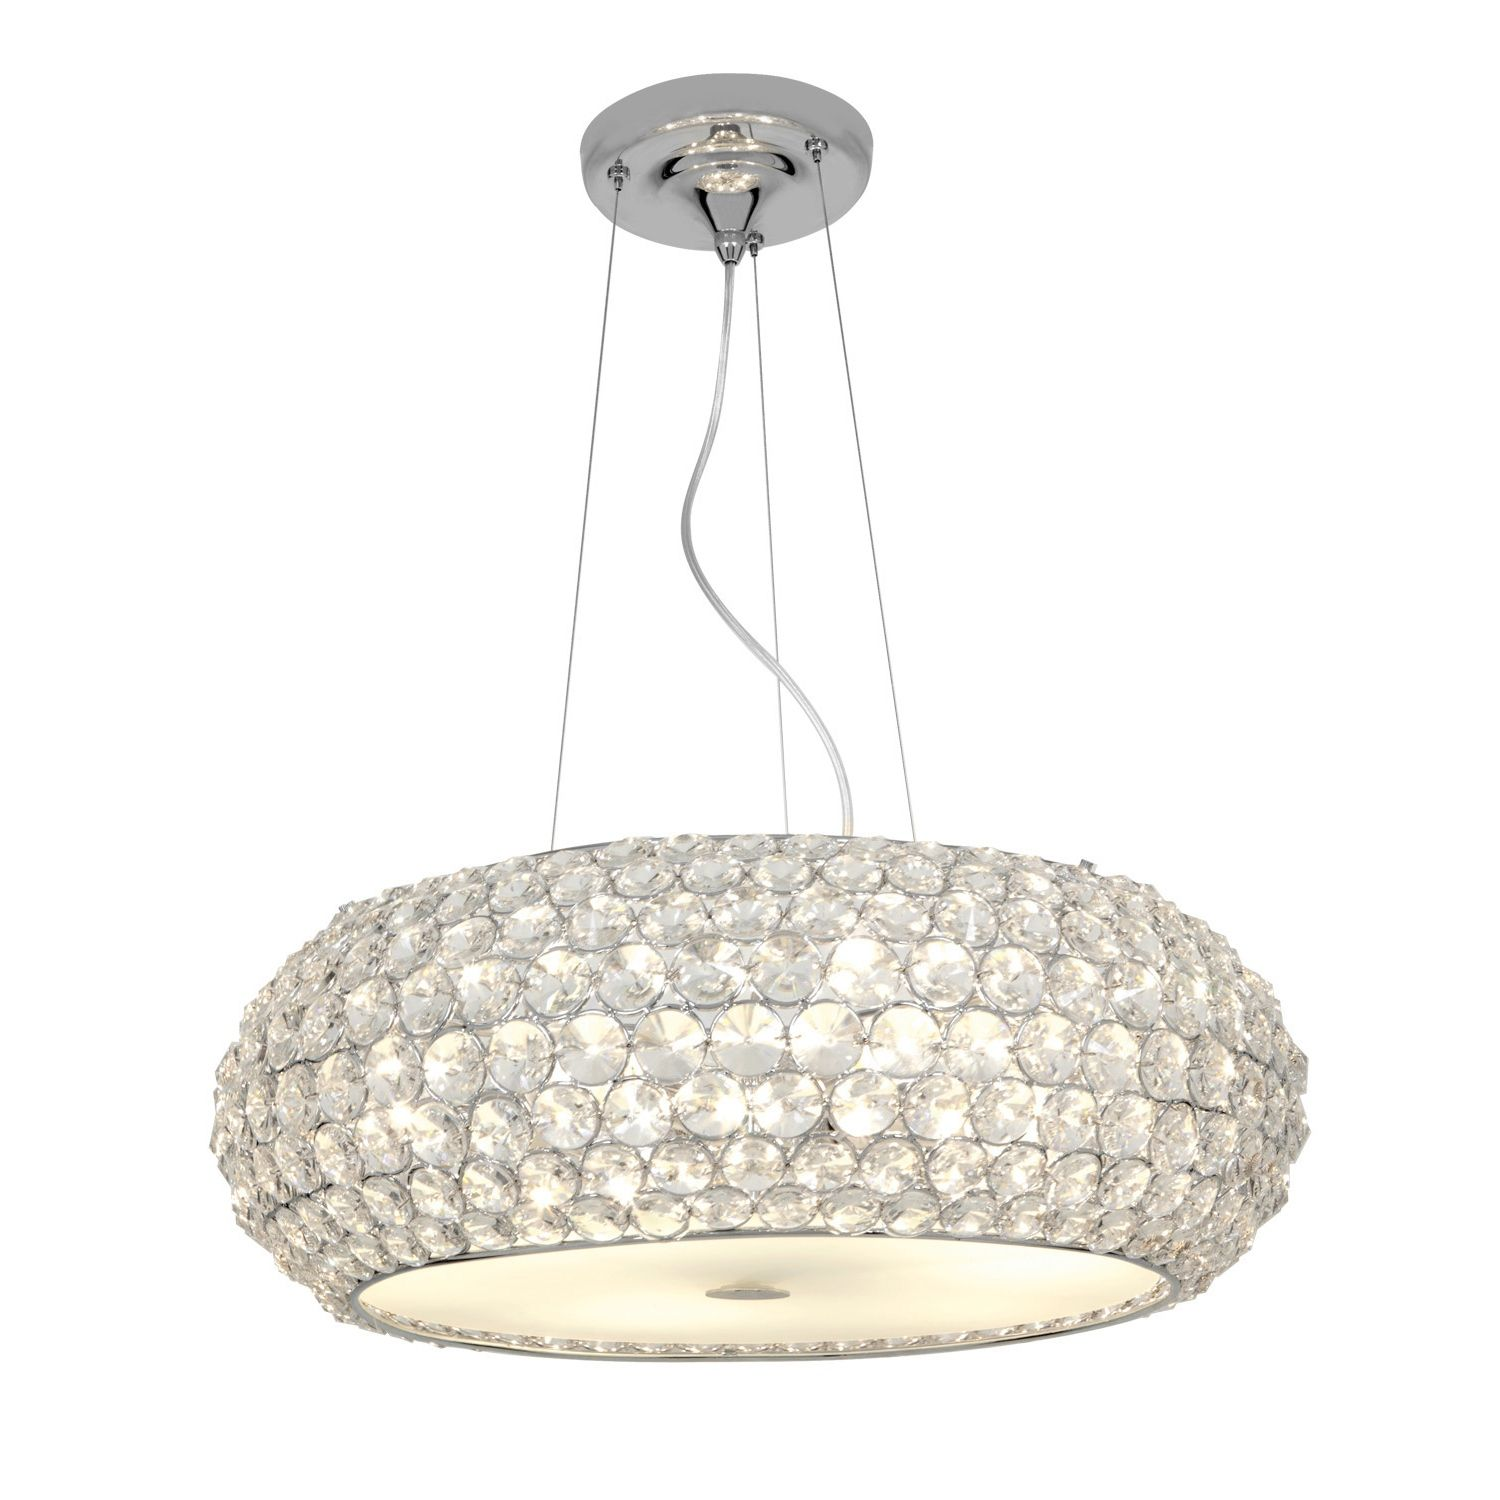 Add a unique twist to your home with the Kristal 6light pendant